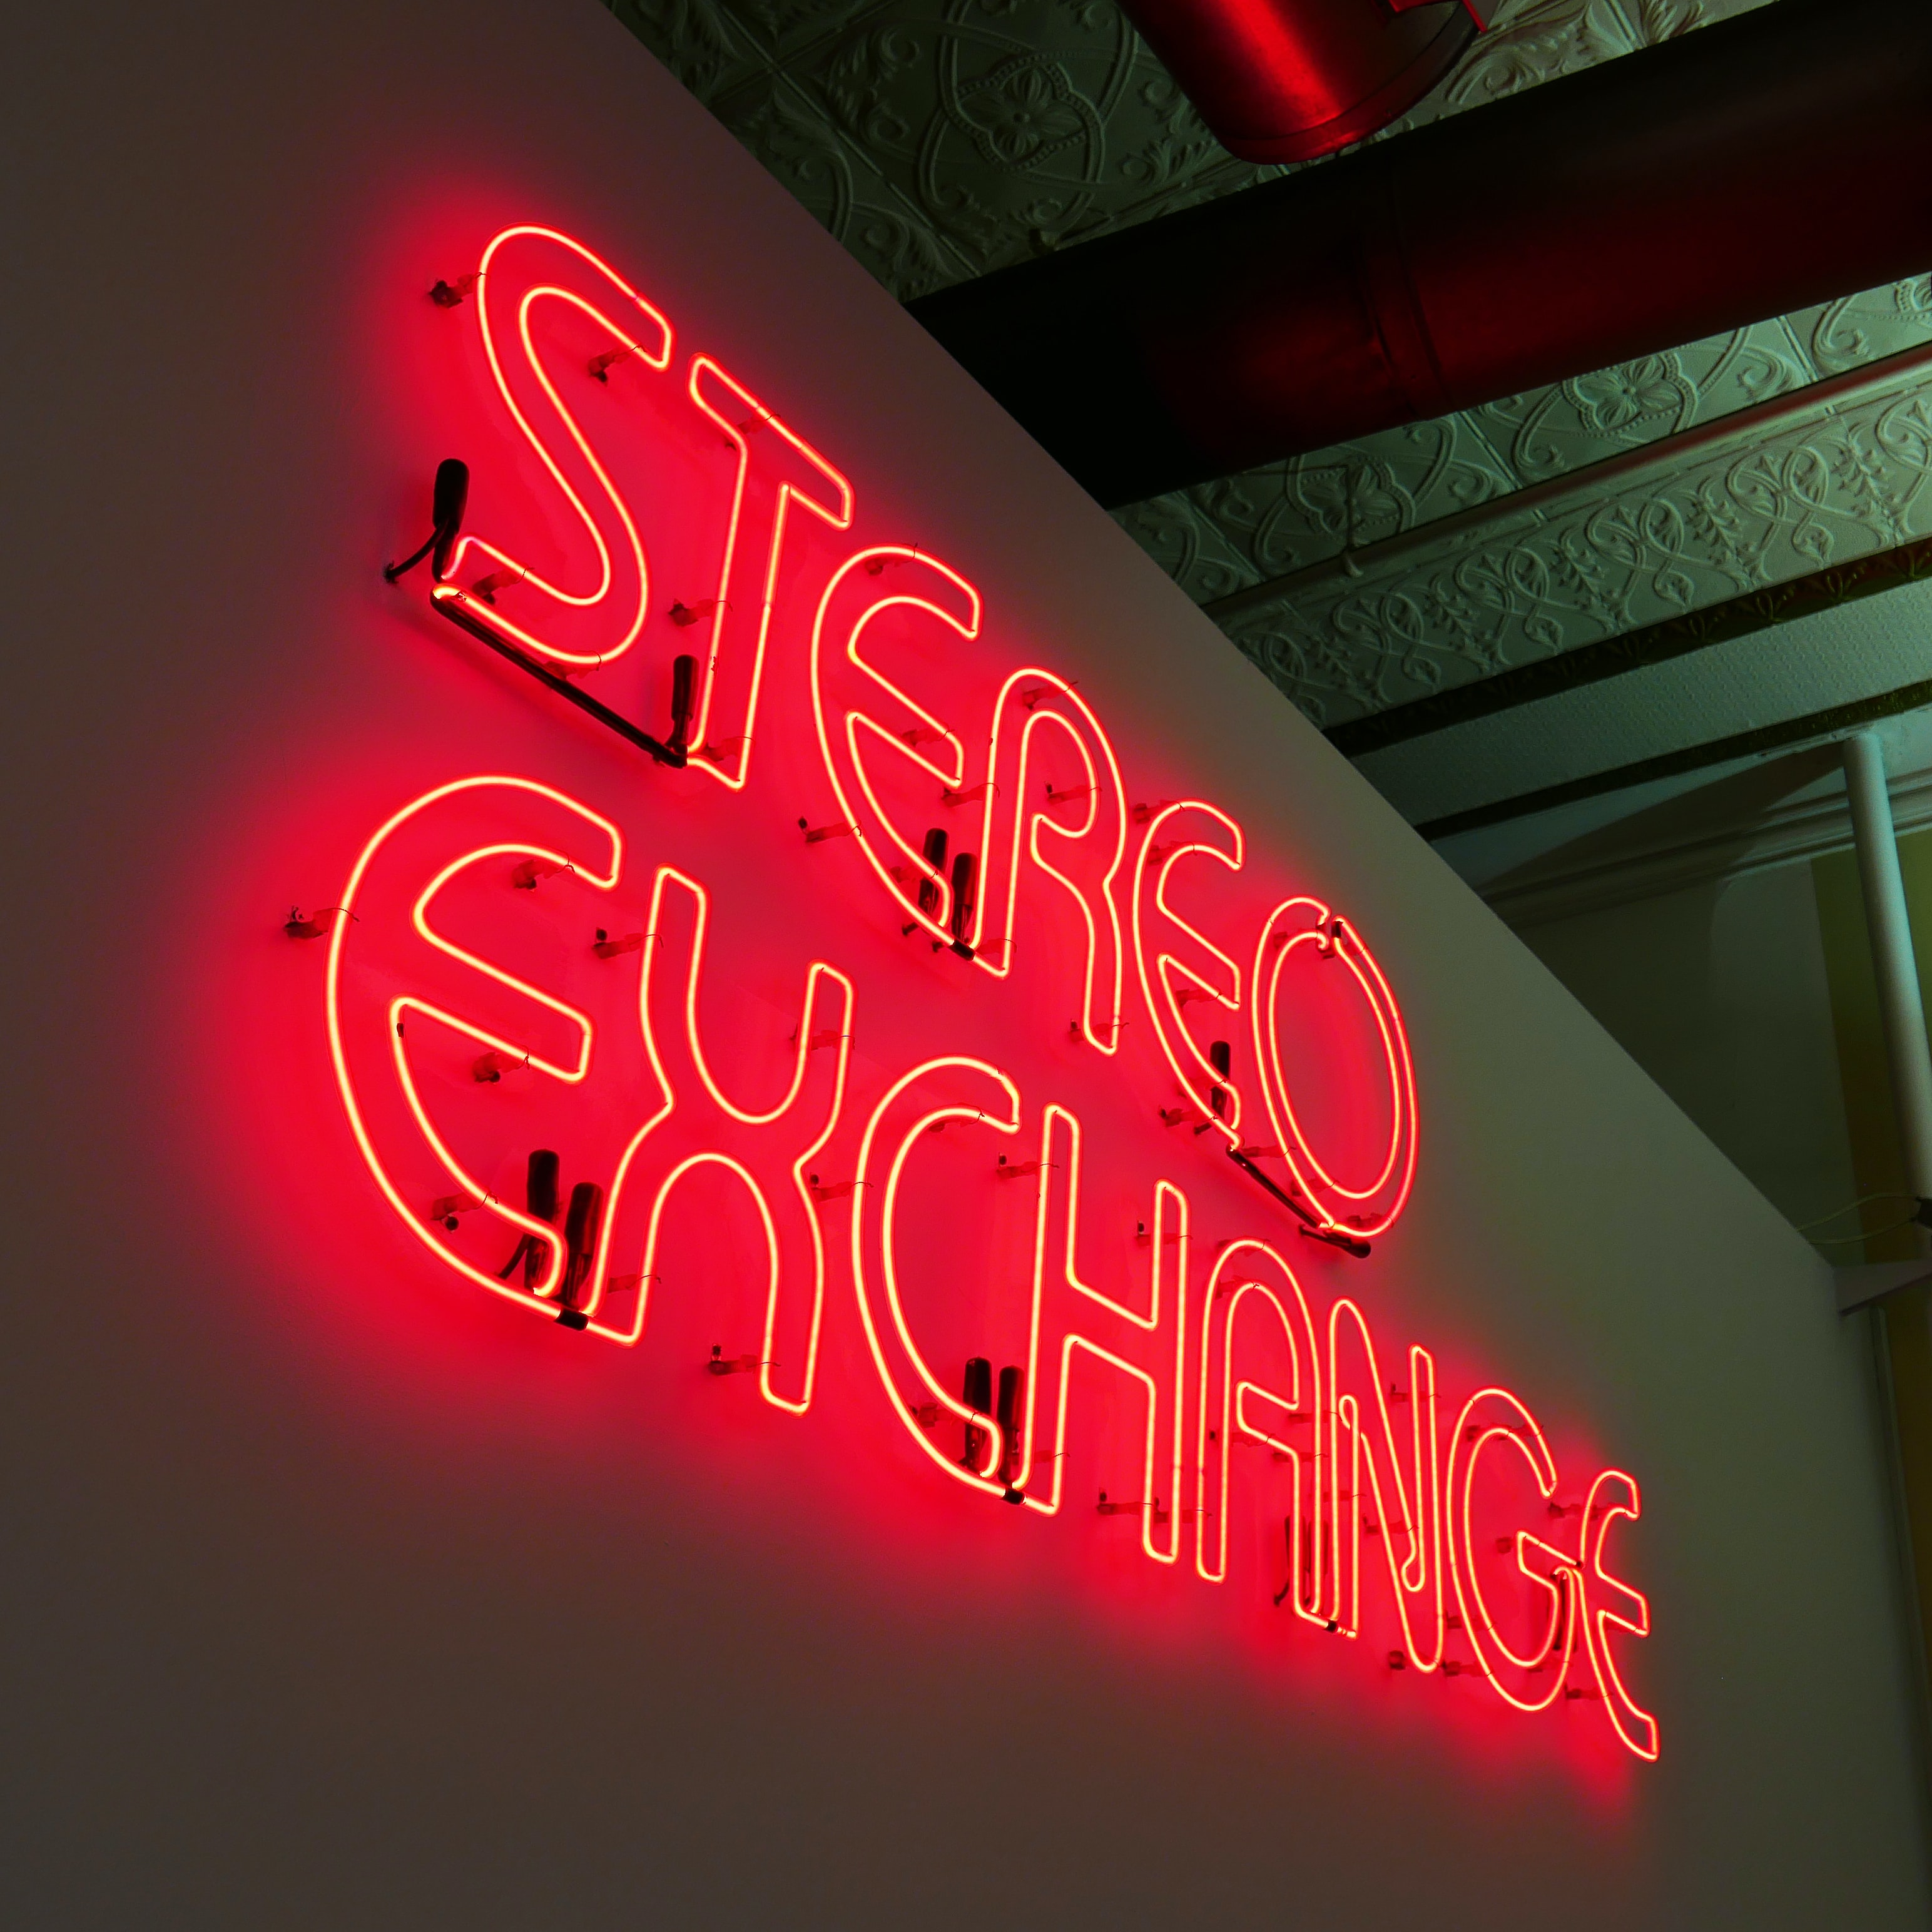 Stereo Exchange LED pub signage on white painted concrete wall